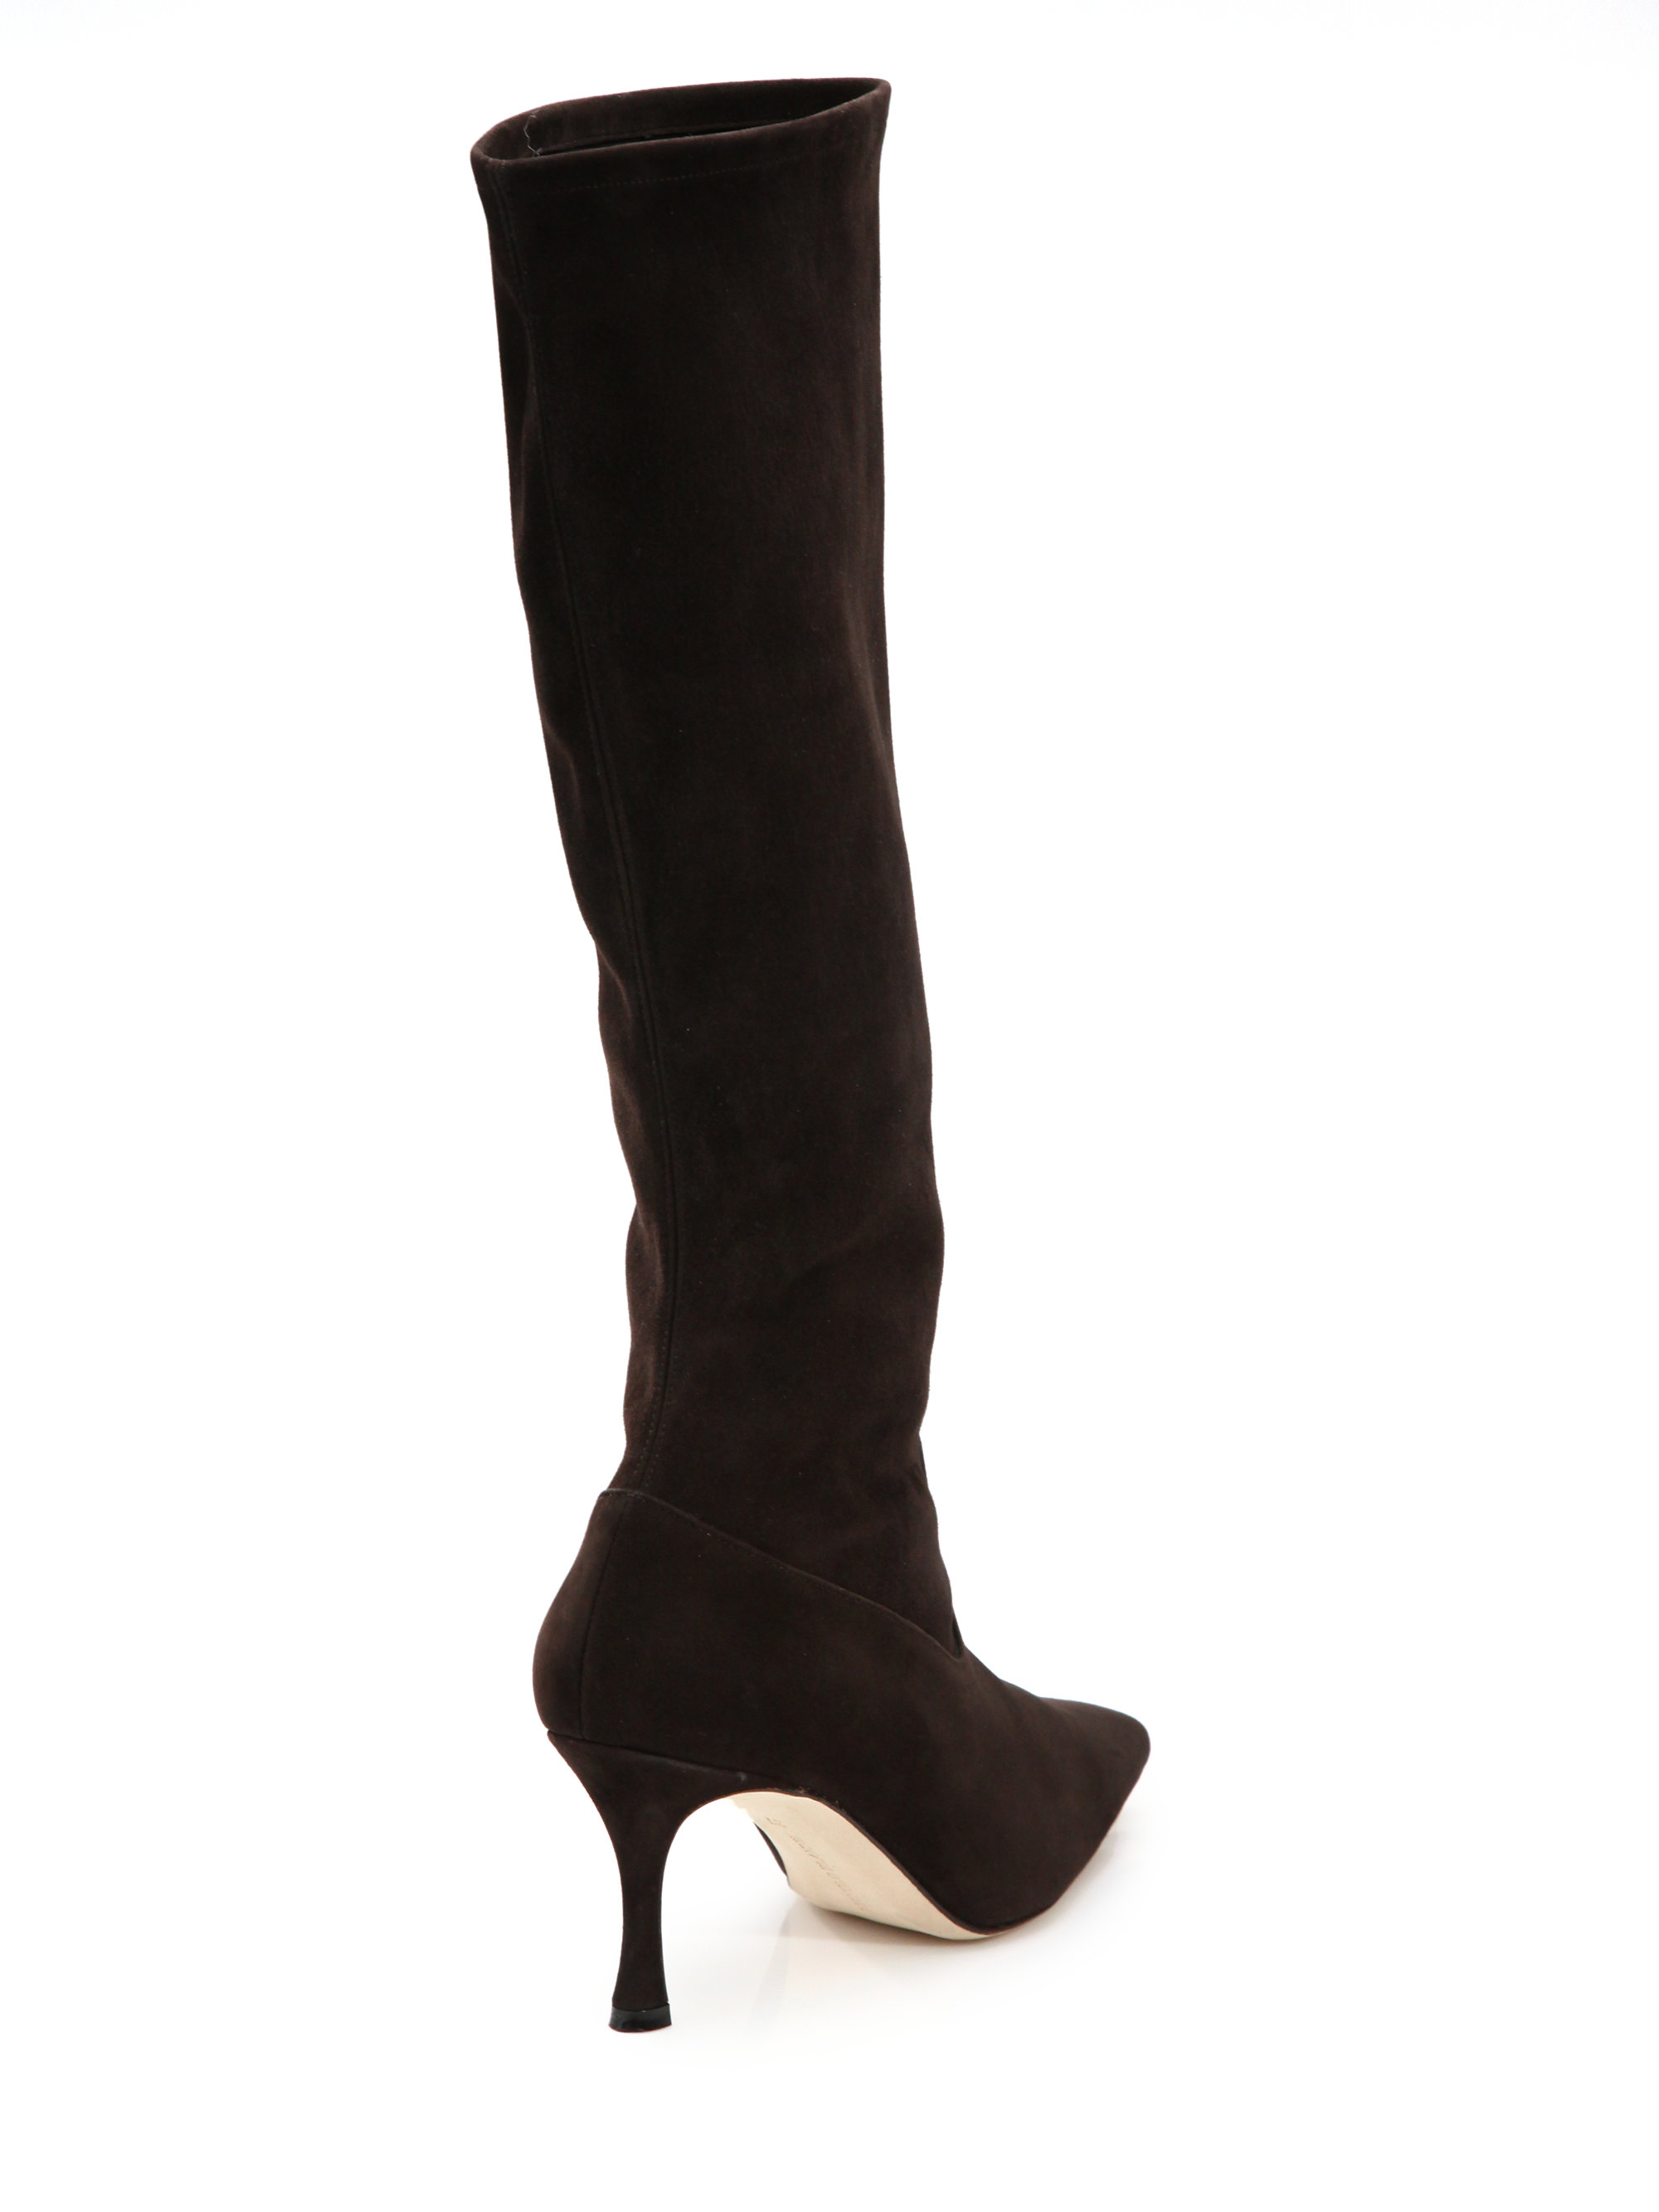 great deals for sale Manolo Blahnik Pascalare Knee-High Boots sale recommend Orange 100% Original prices cheap price clearance get to buy OZahVs